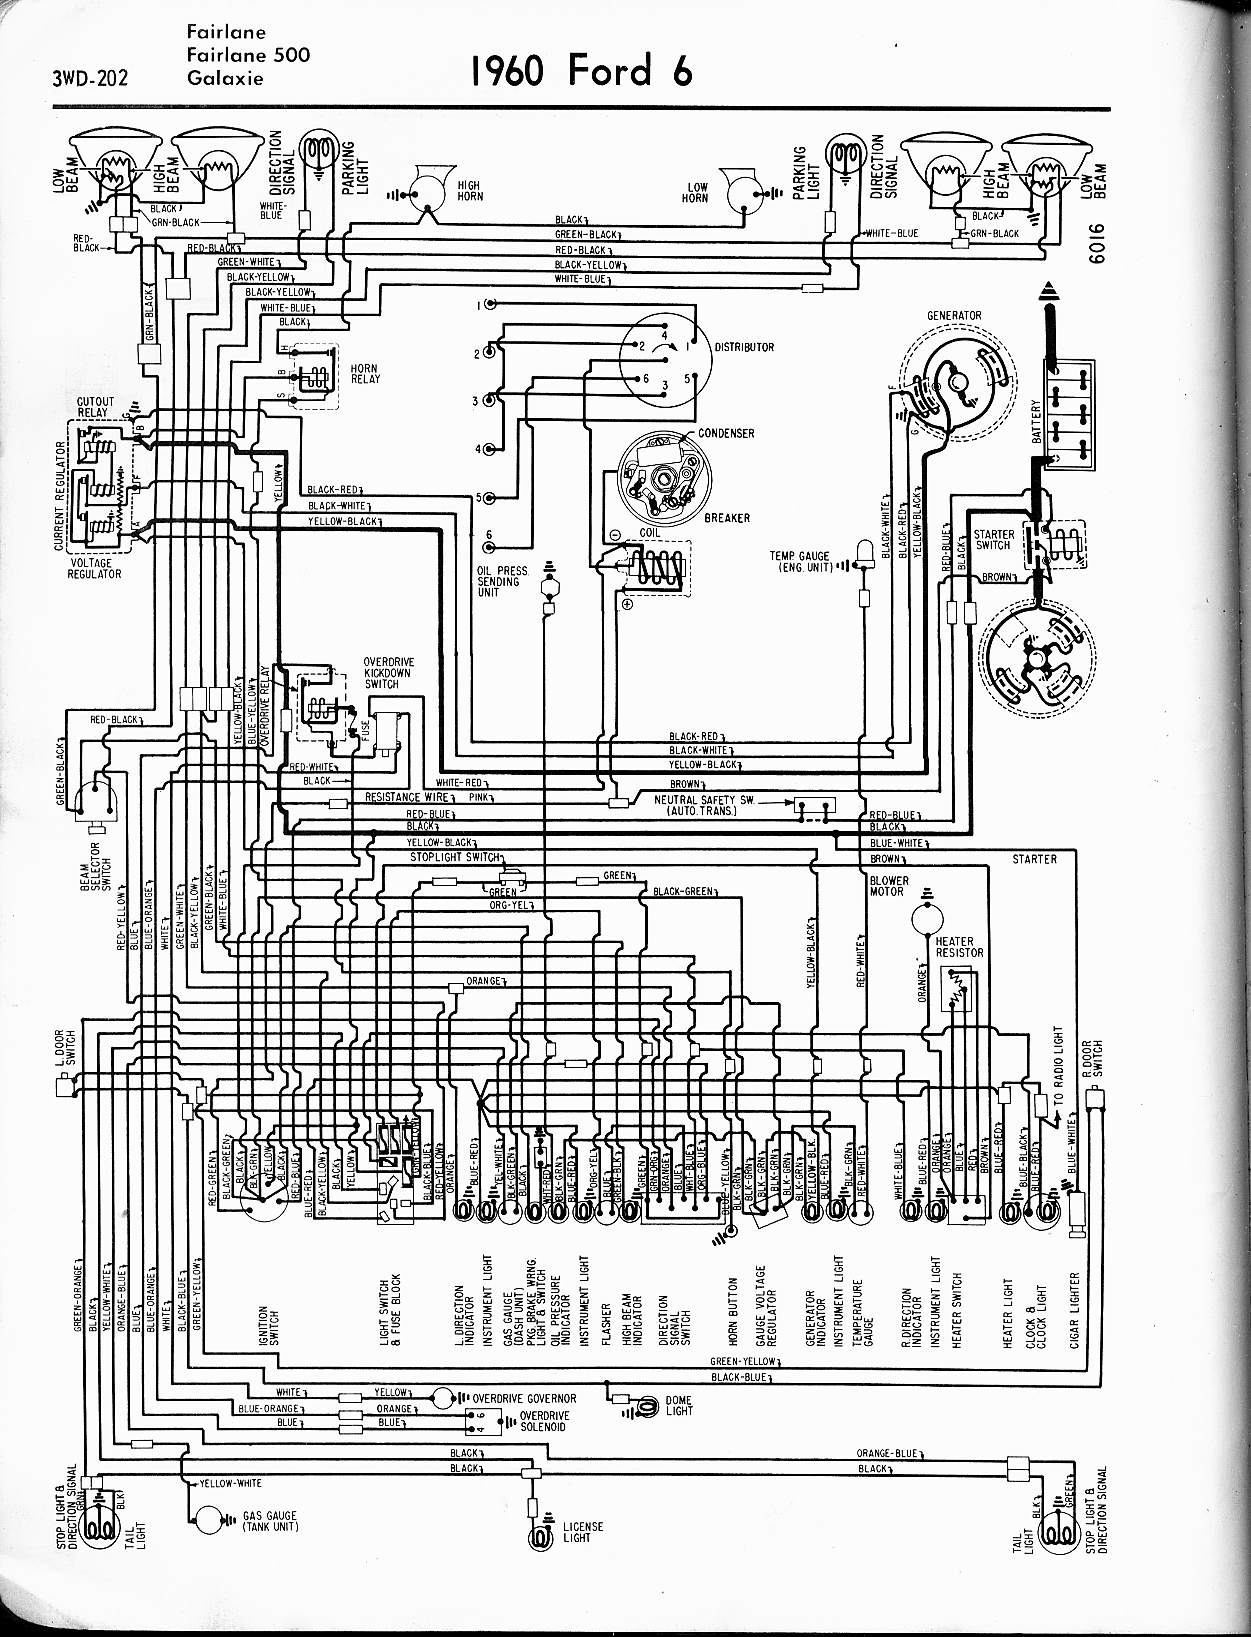 Ford Electrical Wiring Diagrams Box 48 Pu 57 65 Fiesta Diagram 1960 6 Cyl Fairlane 500